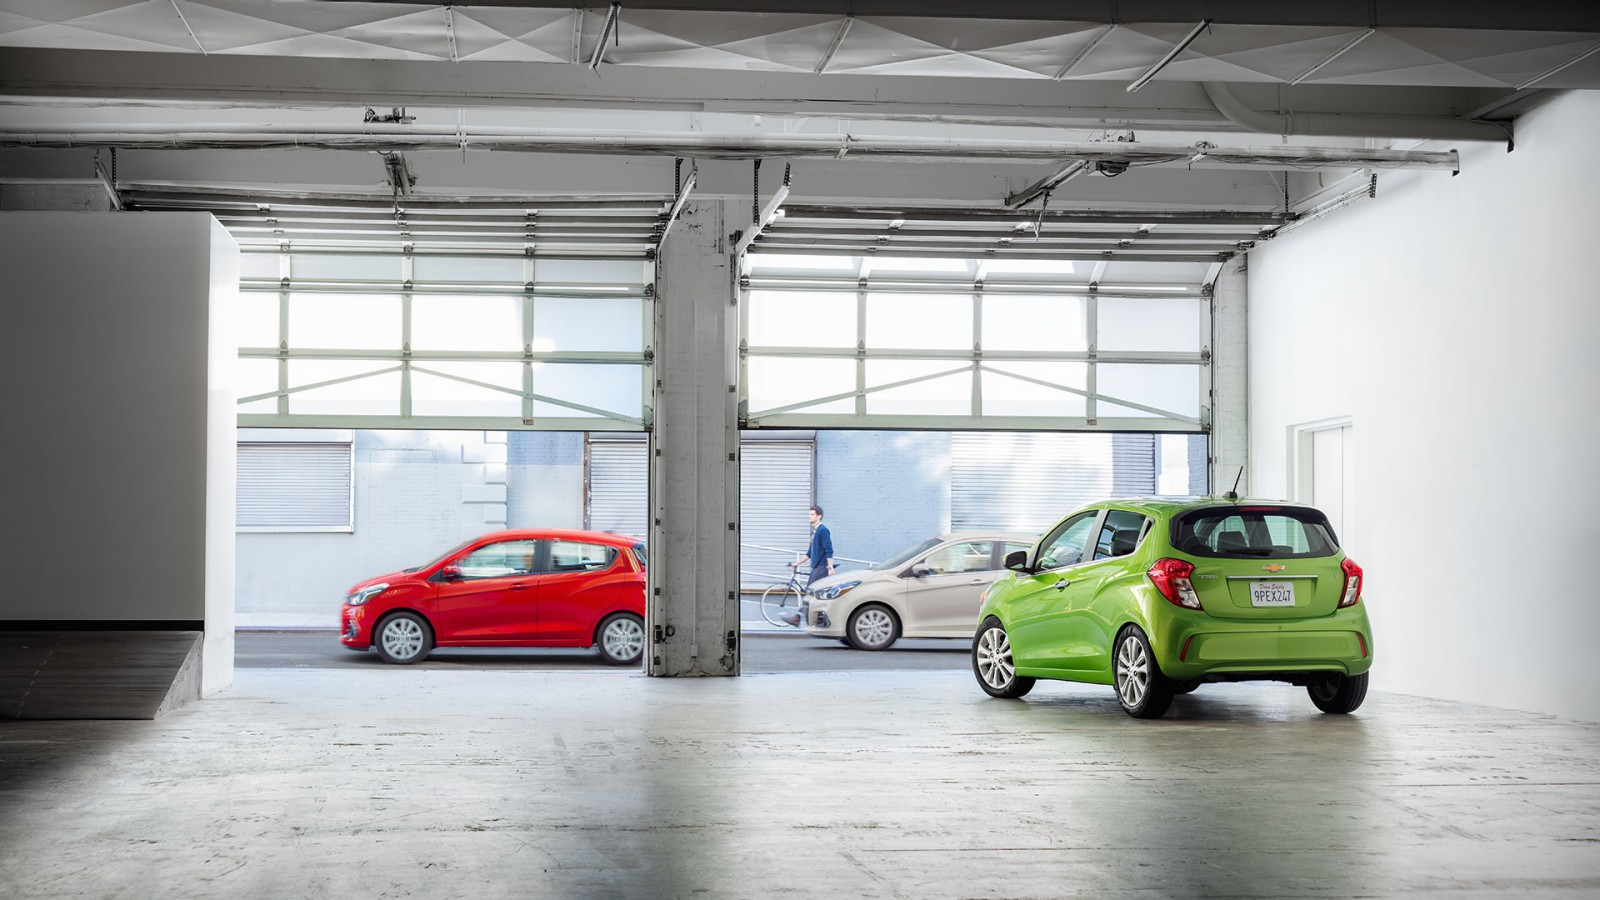 New Chevrolet Spark Exterior image 1